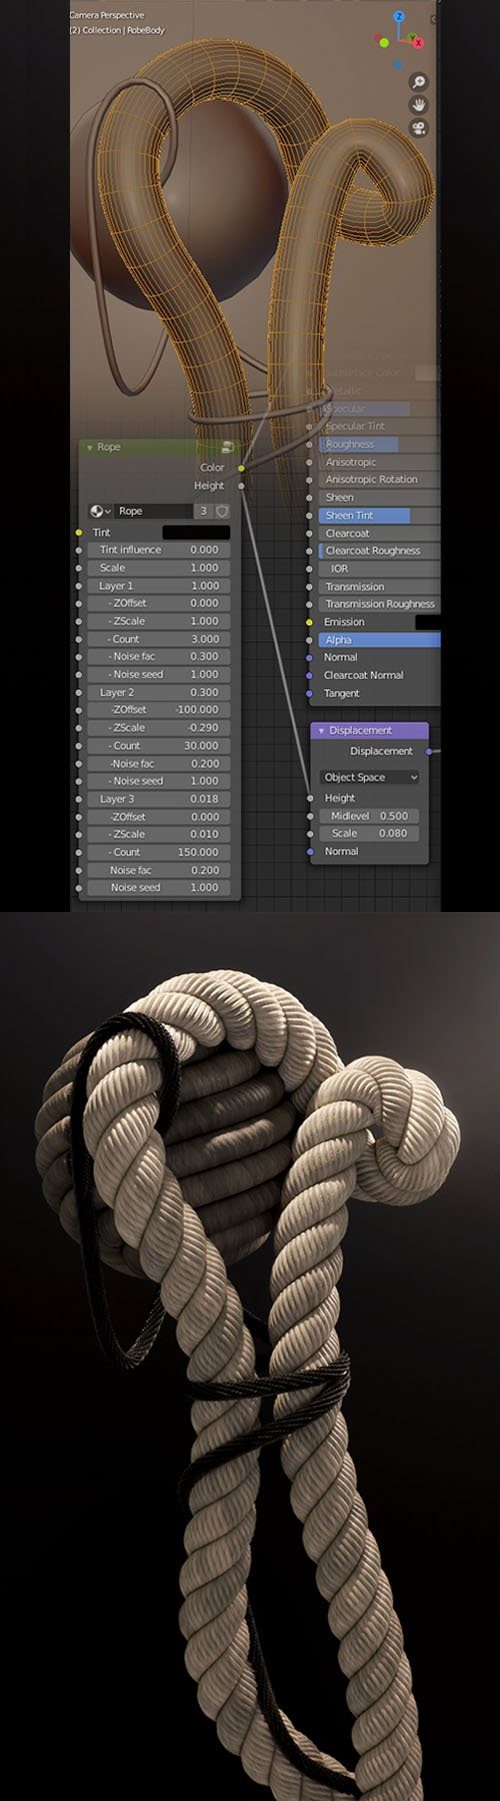 Rope Shader v0.1 - Blender Procedural for Blender 2.81